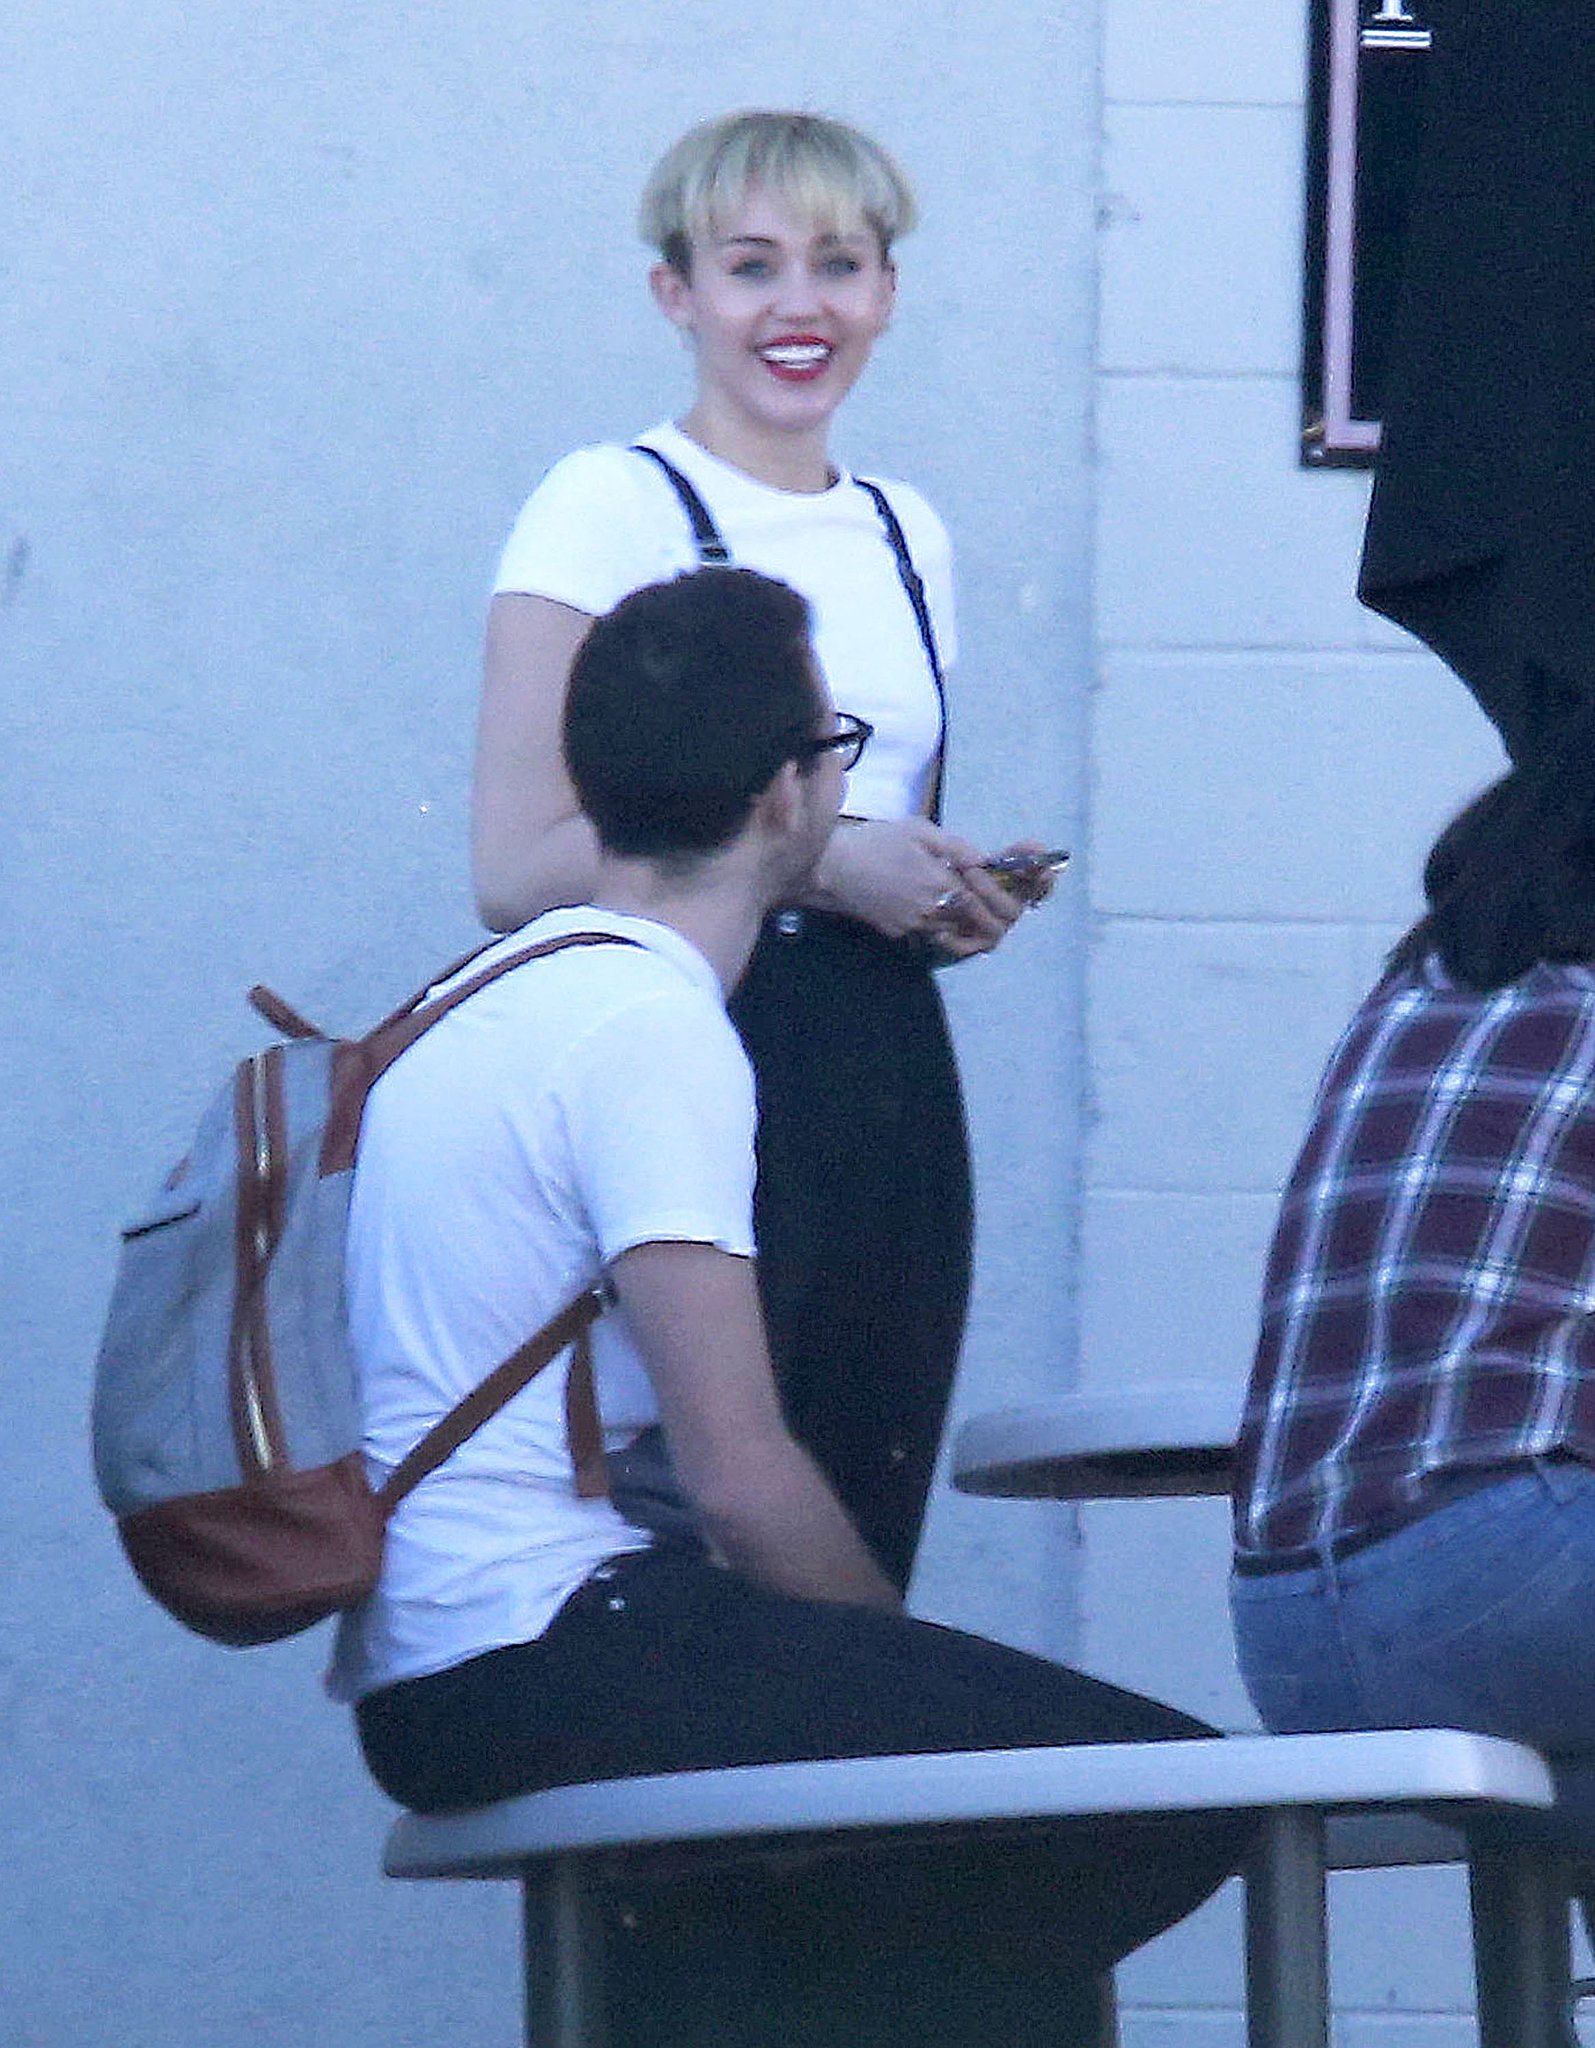 Miley, Miley, Miley. The singer was in our Twitter stream again this week for her new bowl-cut hairstyle.